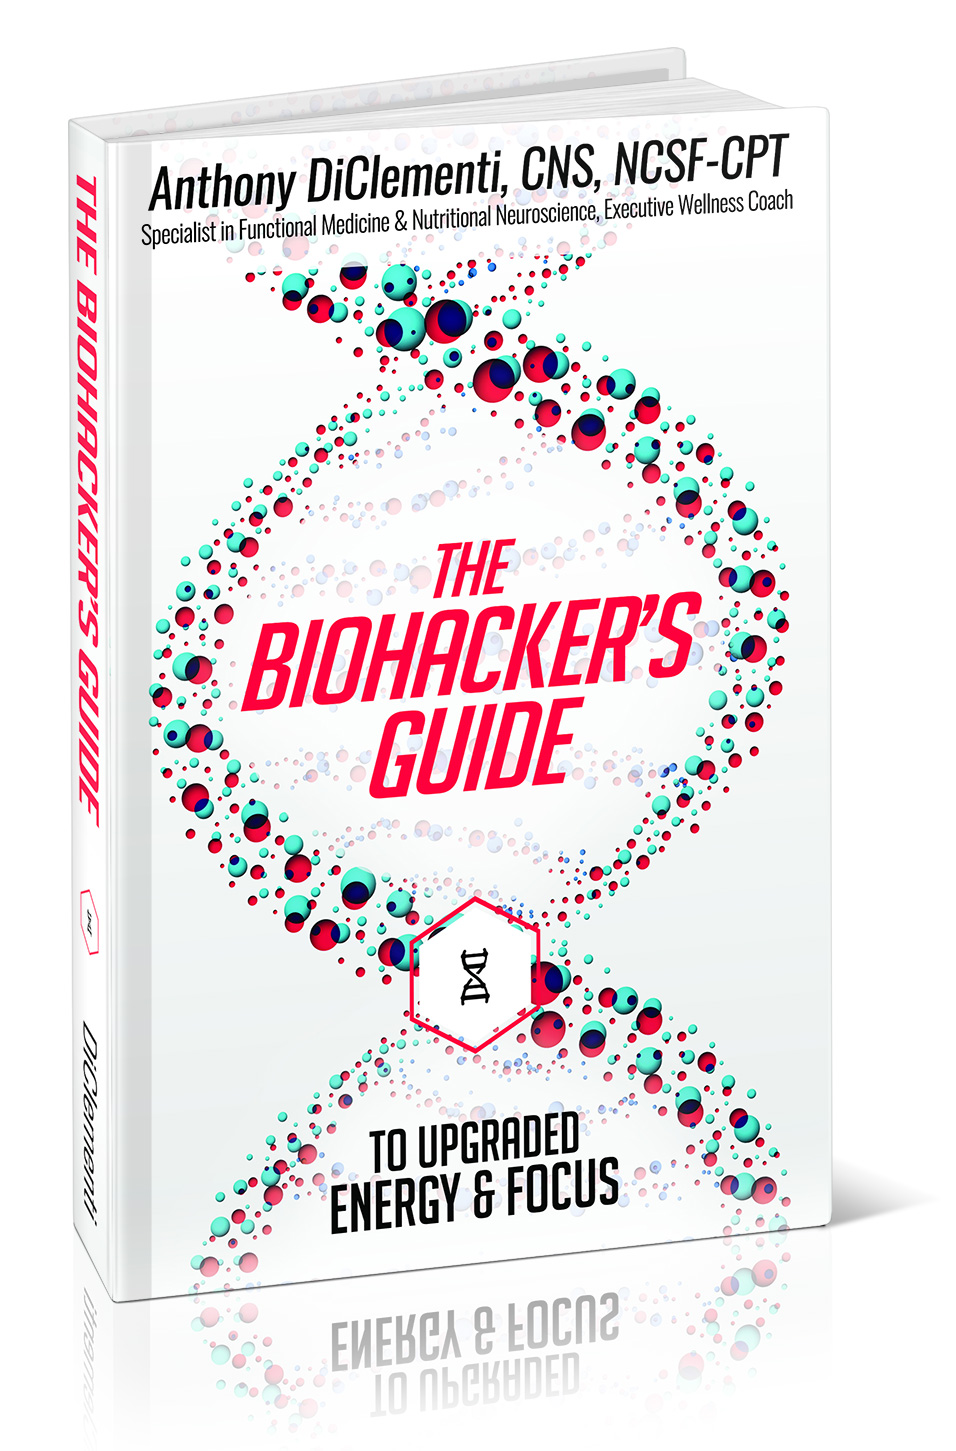 Biohacking Secrets - Free Book Offer